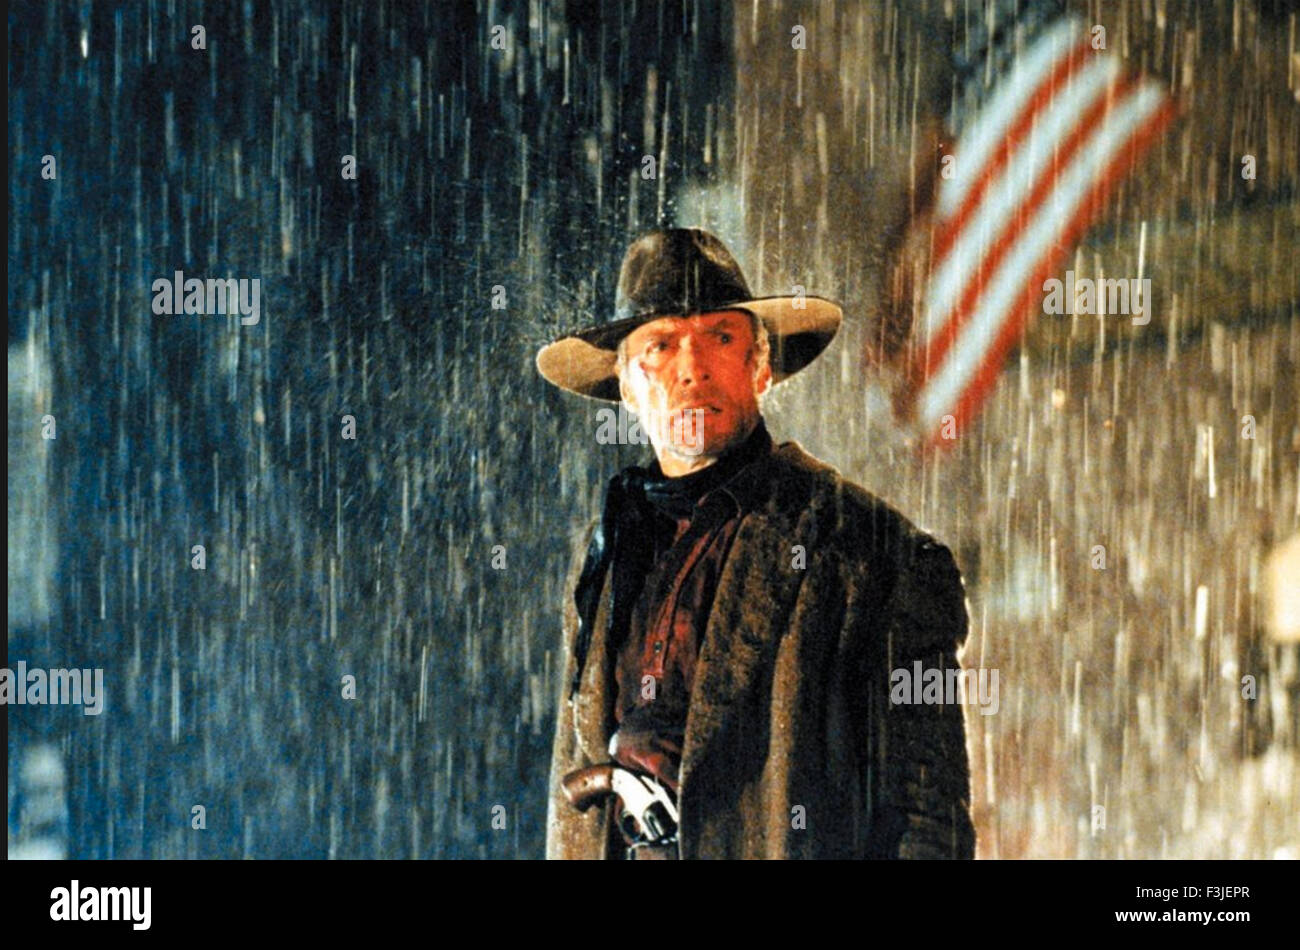 UNFORGIVEN 1992 Warner Bros film with Clint Eastwood - Stock Image